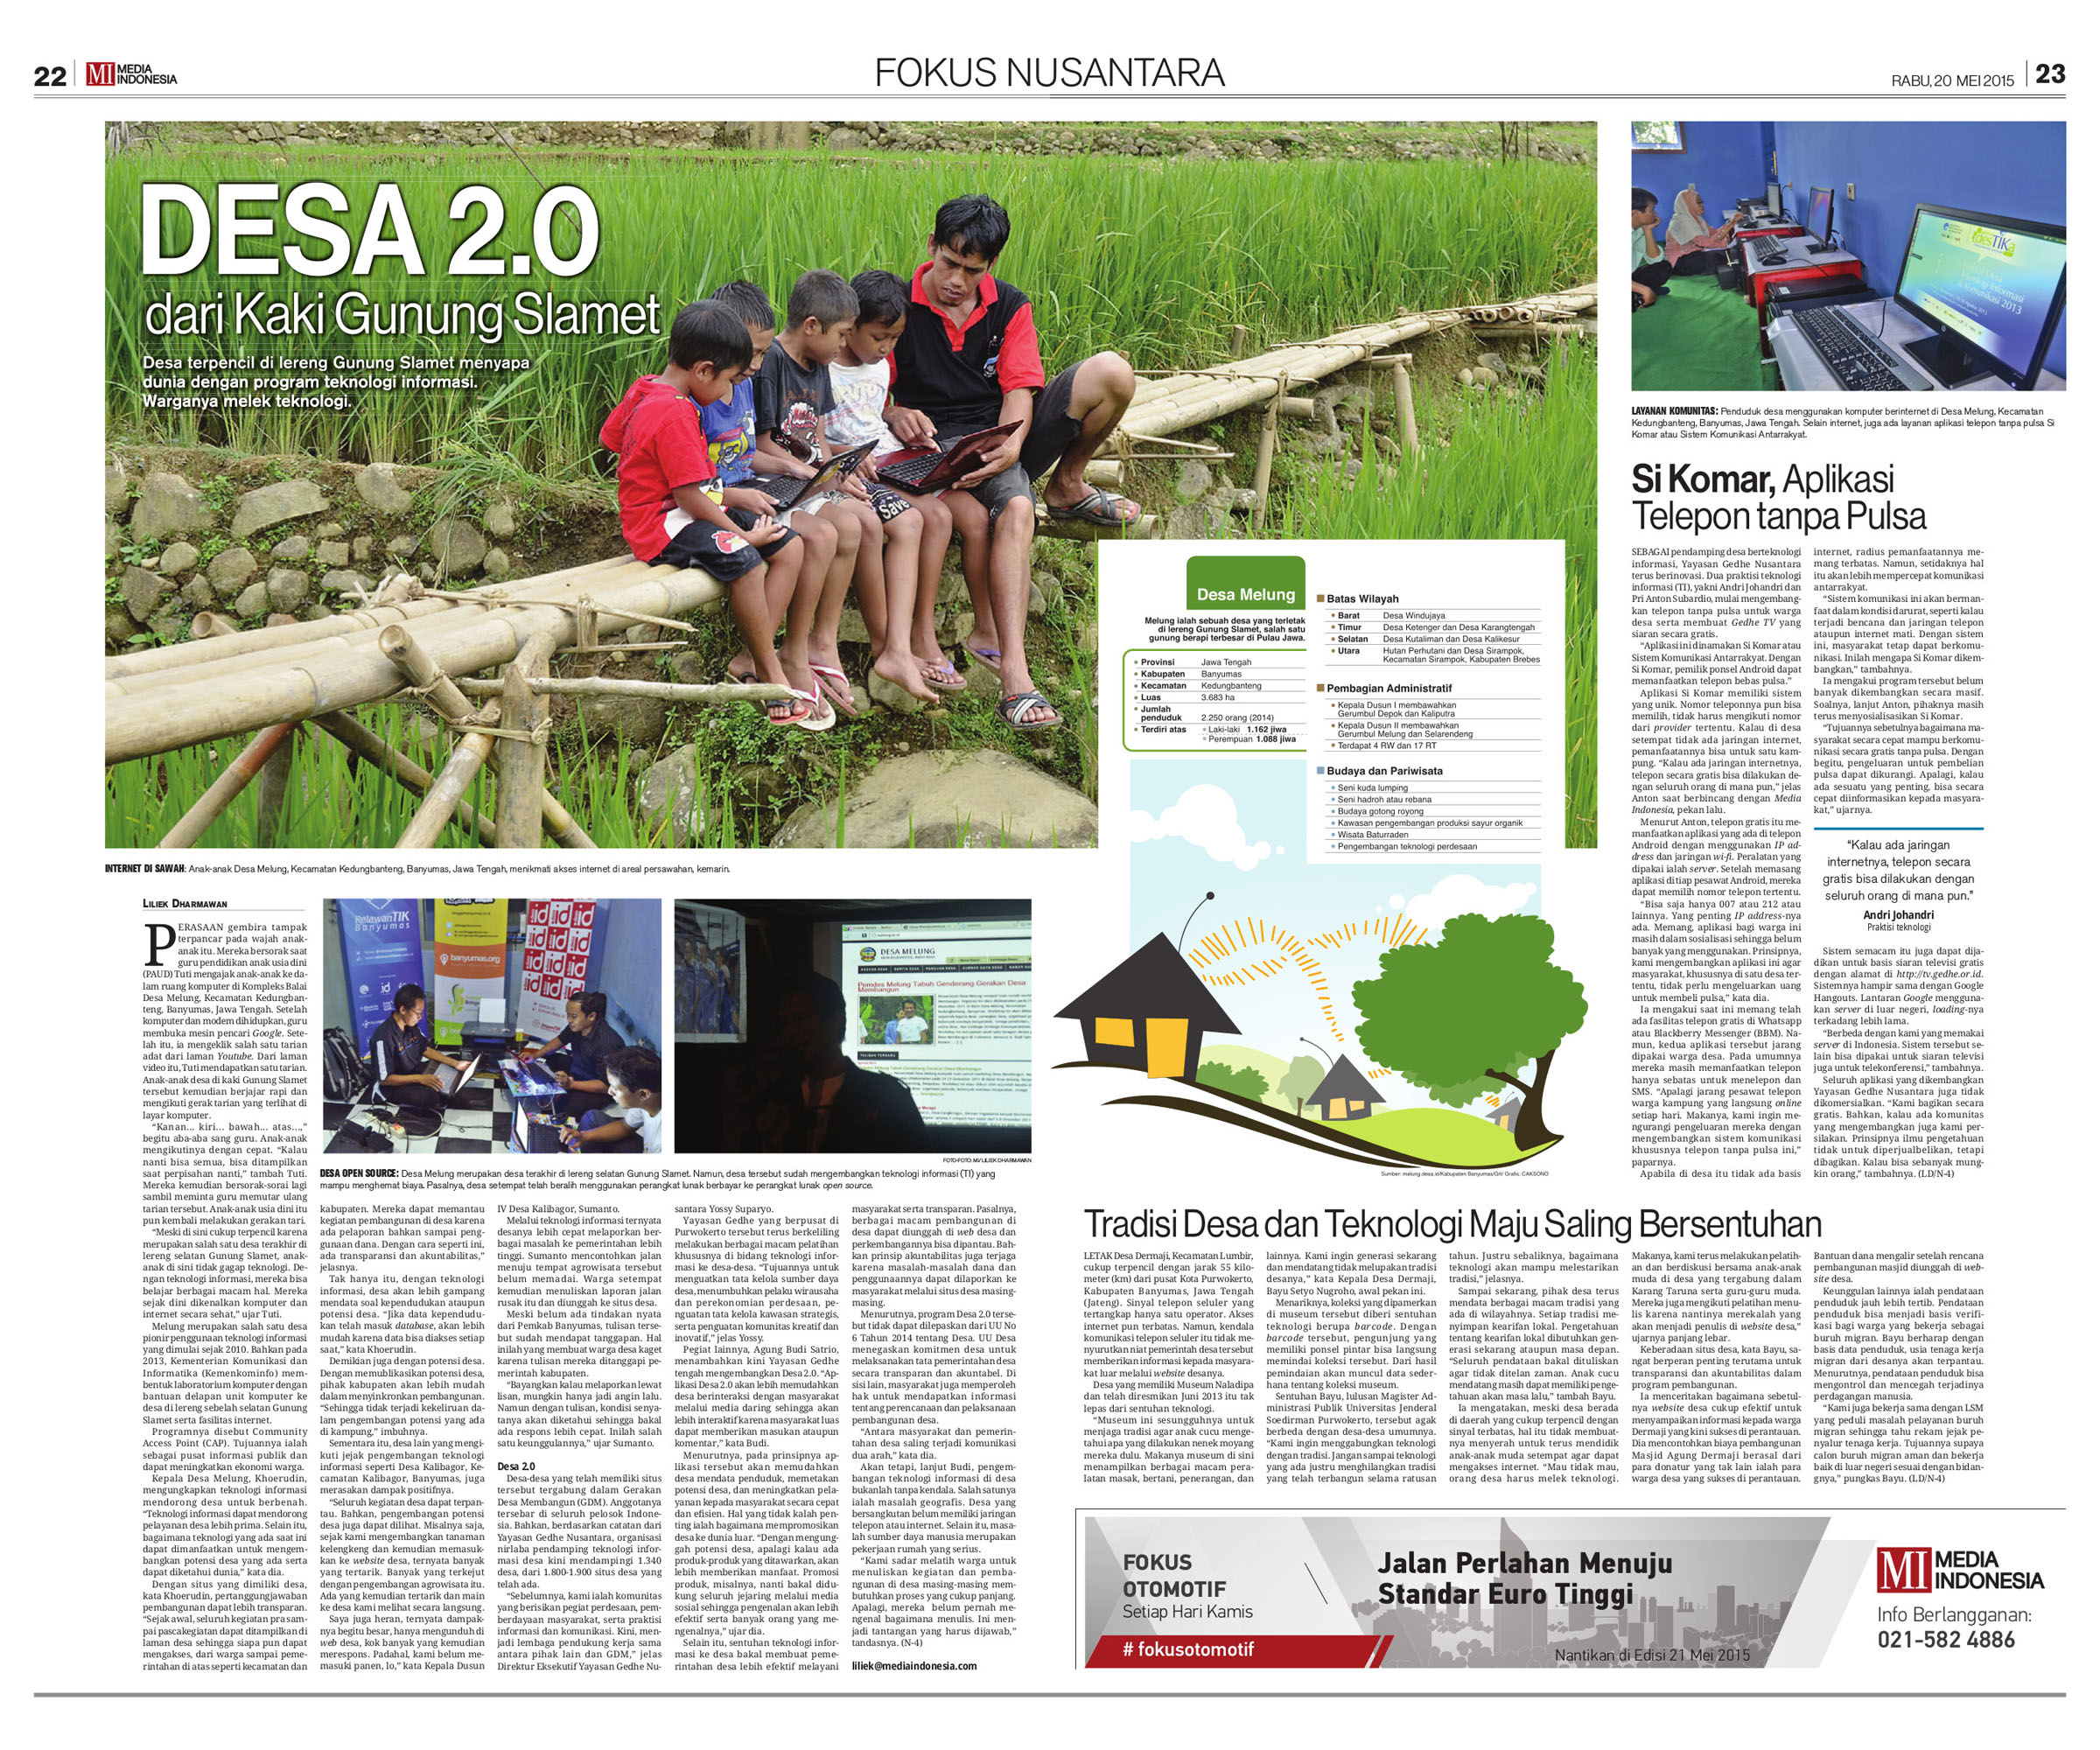 desa20 media indonesia 20mei2015